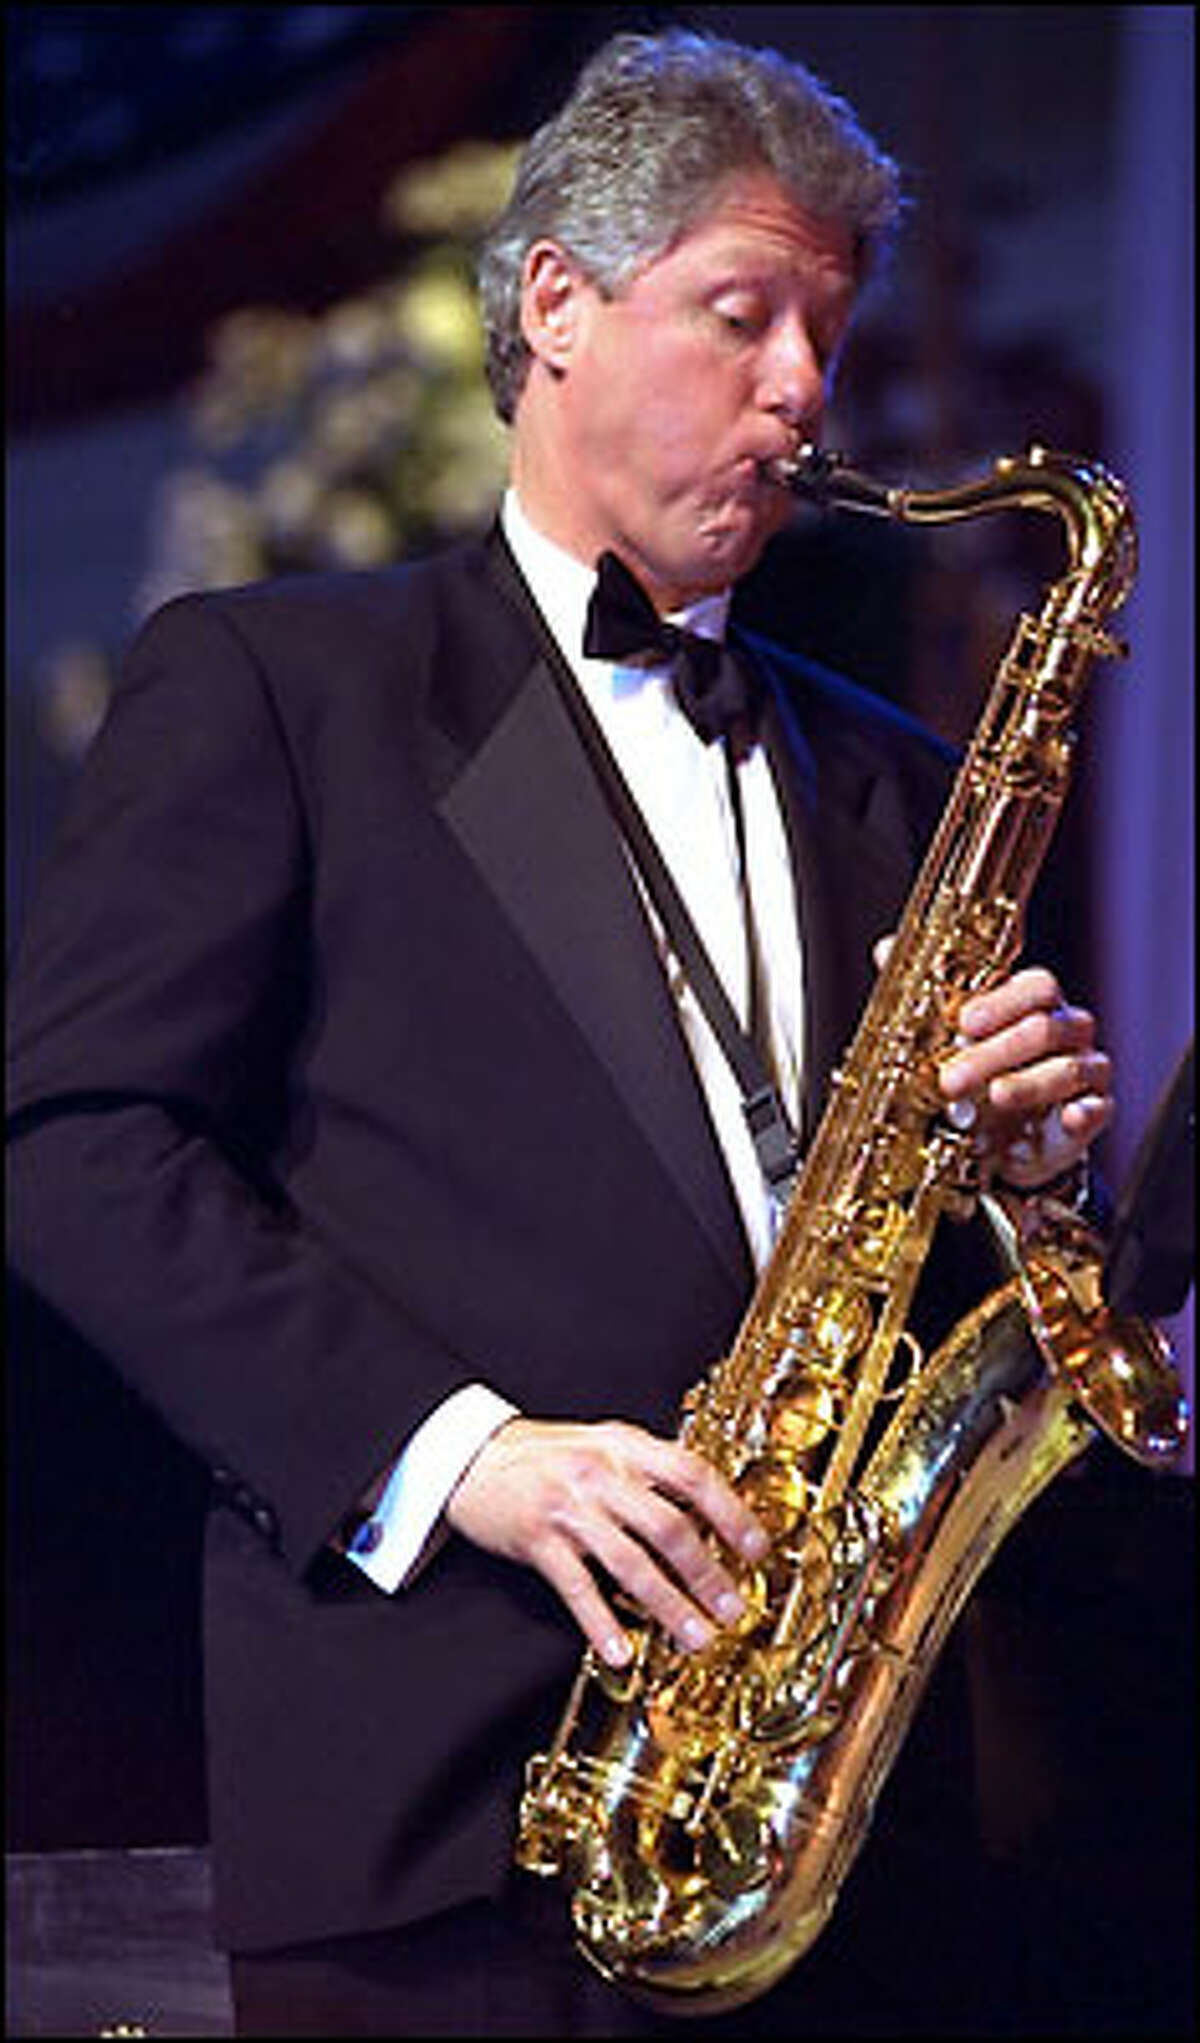 President Clinton wails on his saxophone at his 1993 inaugural ball. No, he won't take the show to Italy.